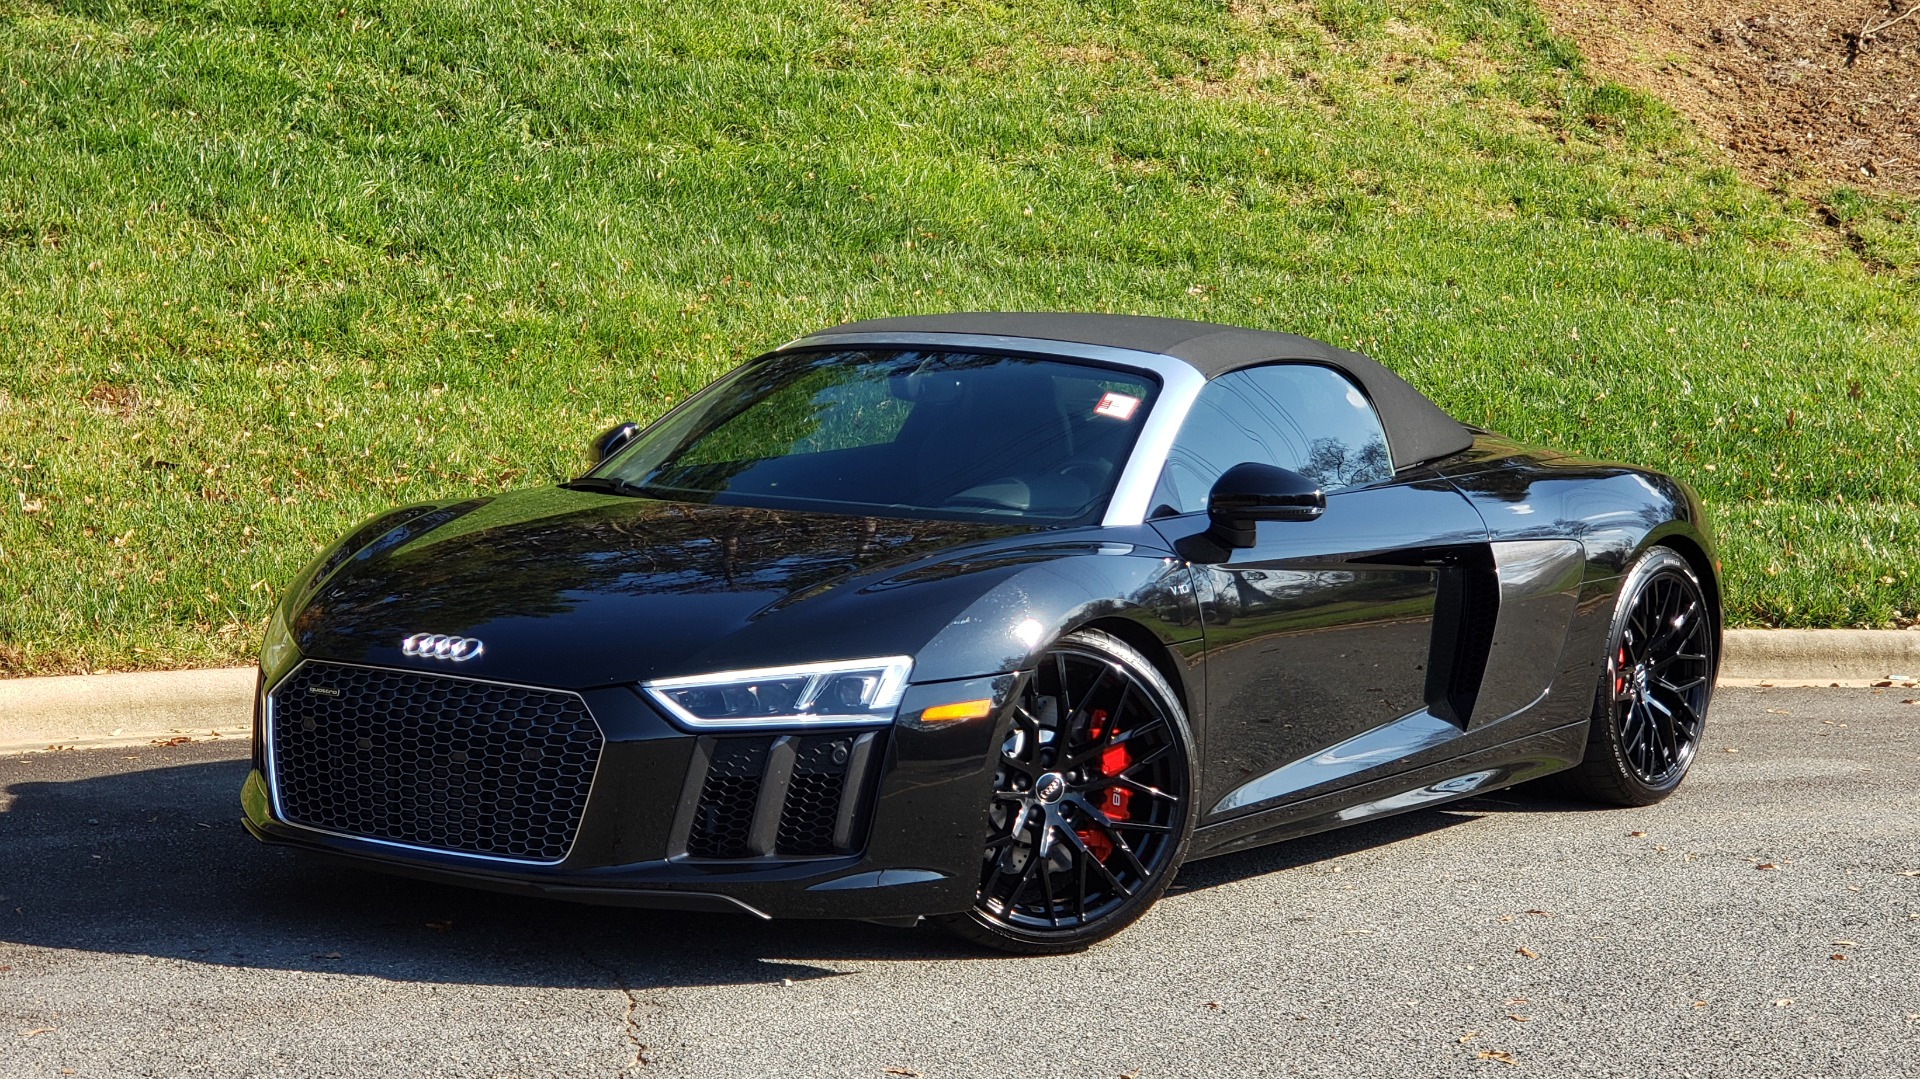 Used 2017 Audi R8 SPYDER V10 S-TRONIC / CARBON EXT & INT PKG / NAV / REARVIEW for sale Sold at Formula Imports in Charlotte NC 28227 4